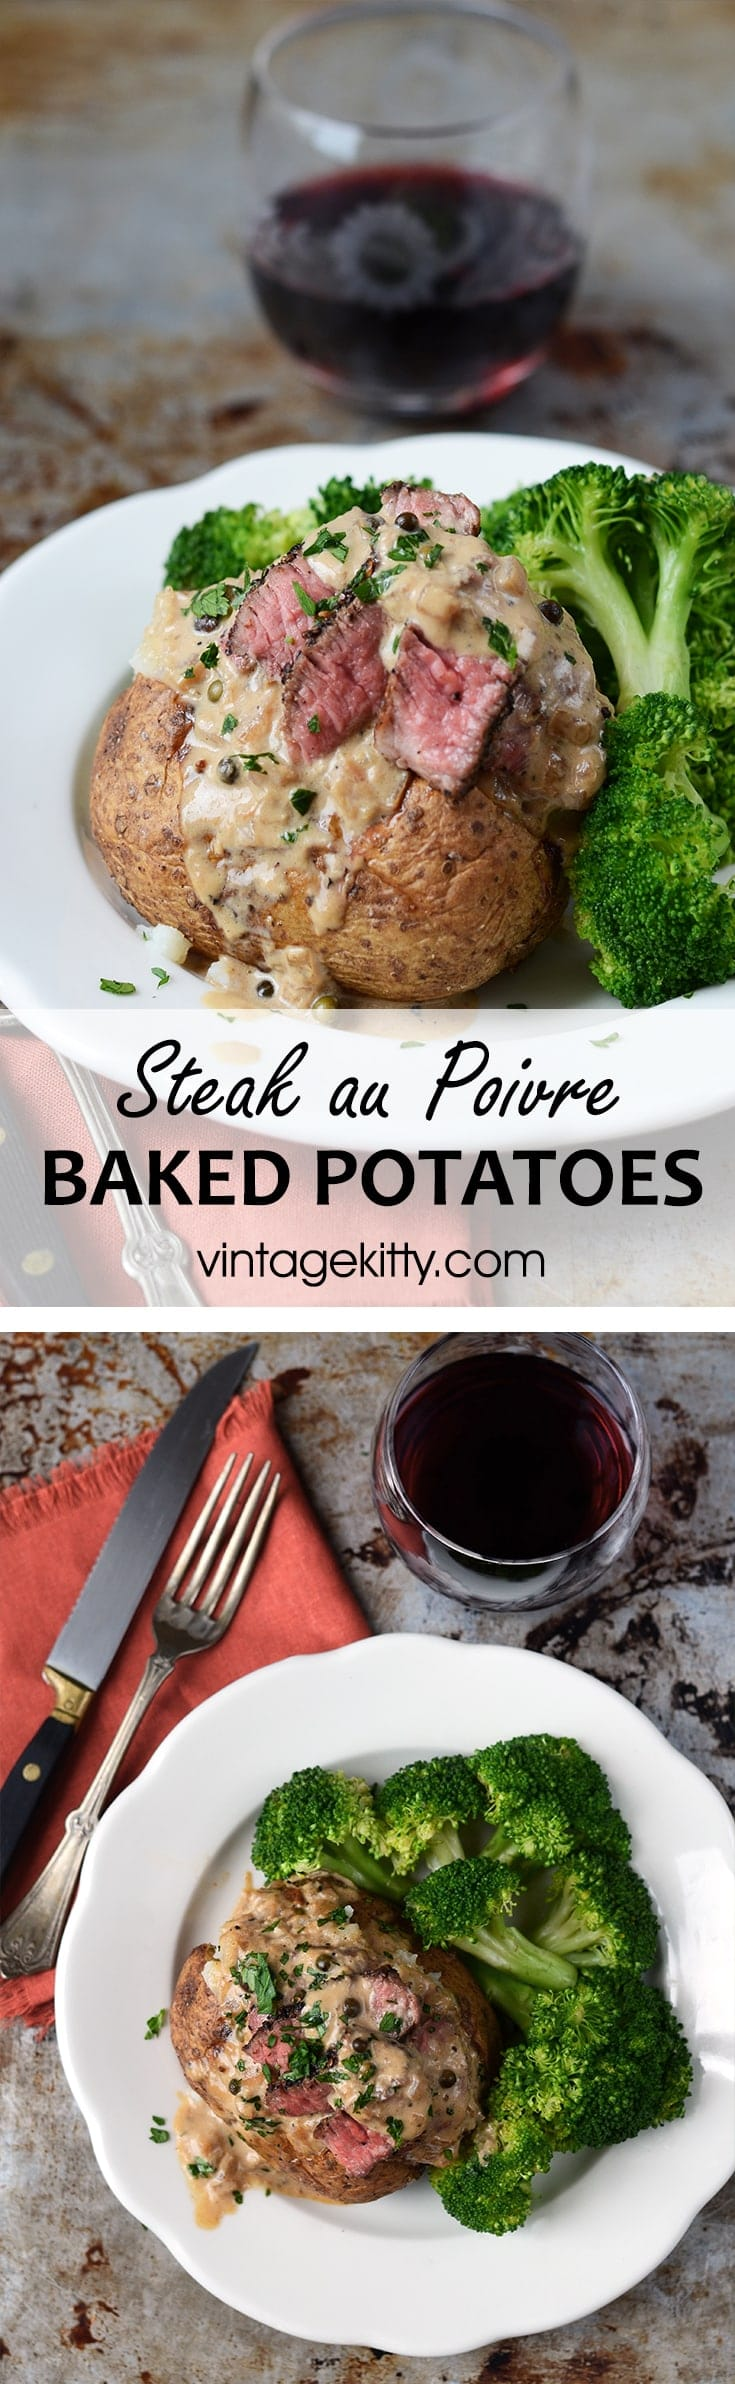 Steak au Poivre Baked Potatoes are a surprisingly easy meal that makes weekdays feel special. | vintagekitty.com